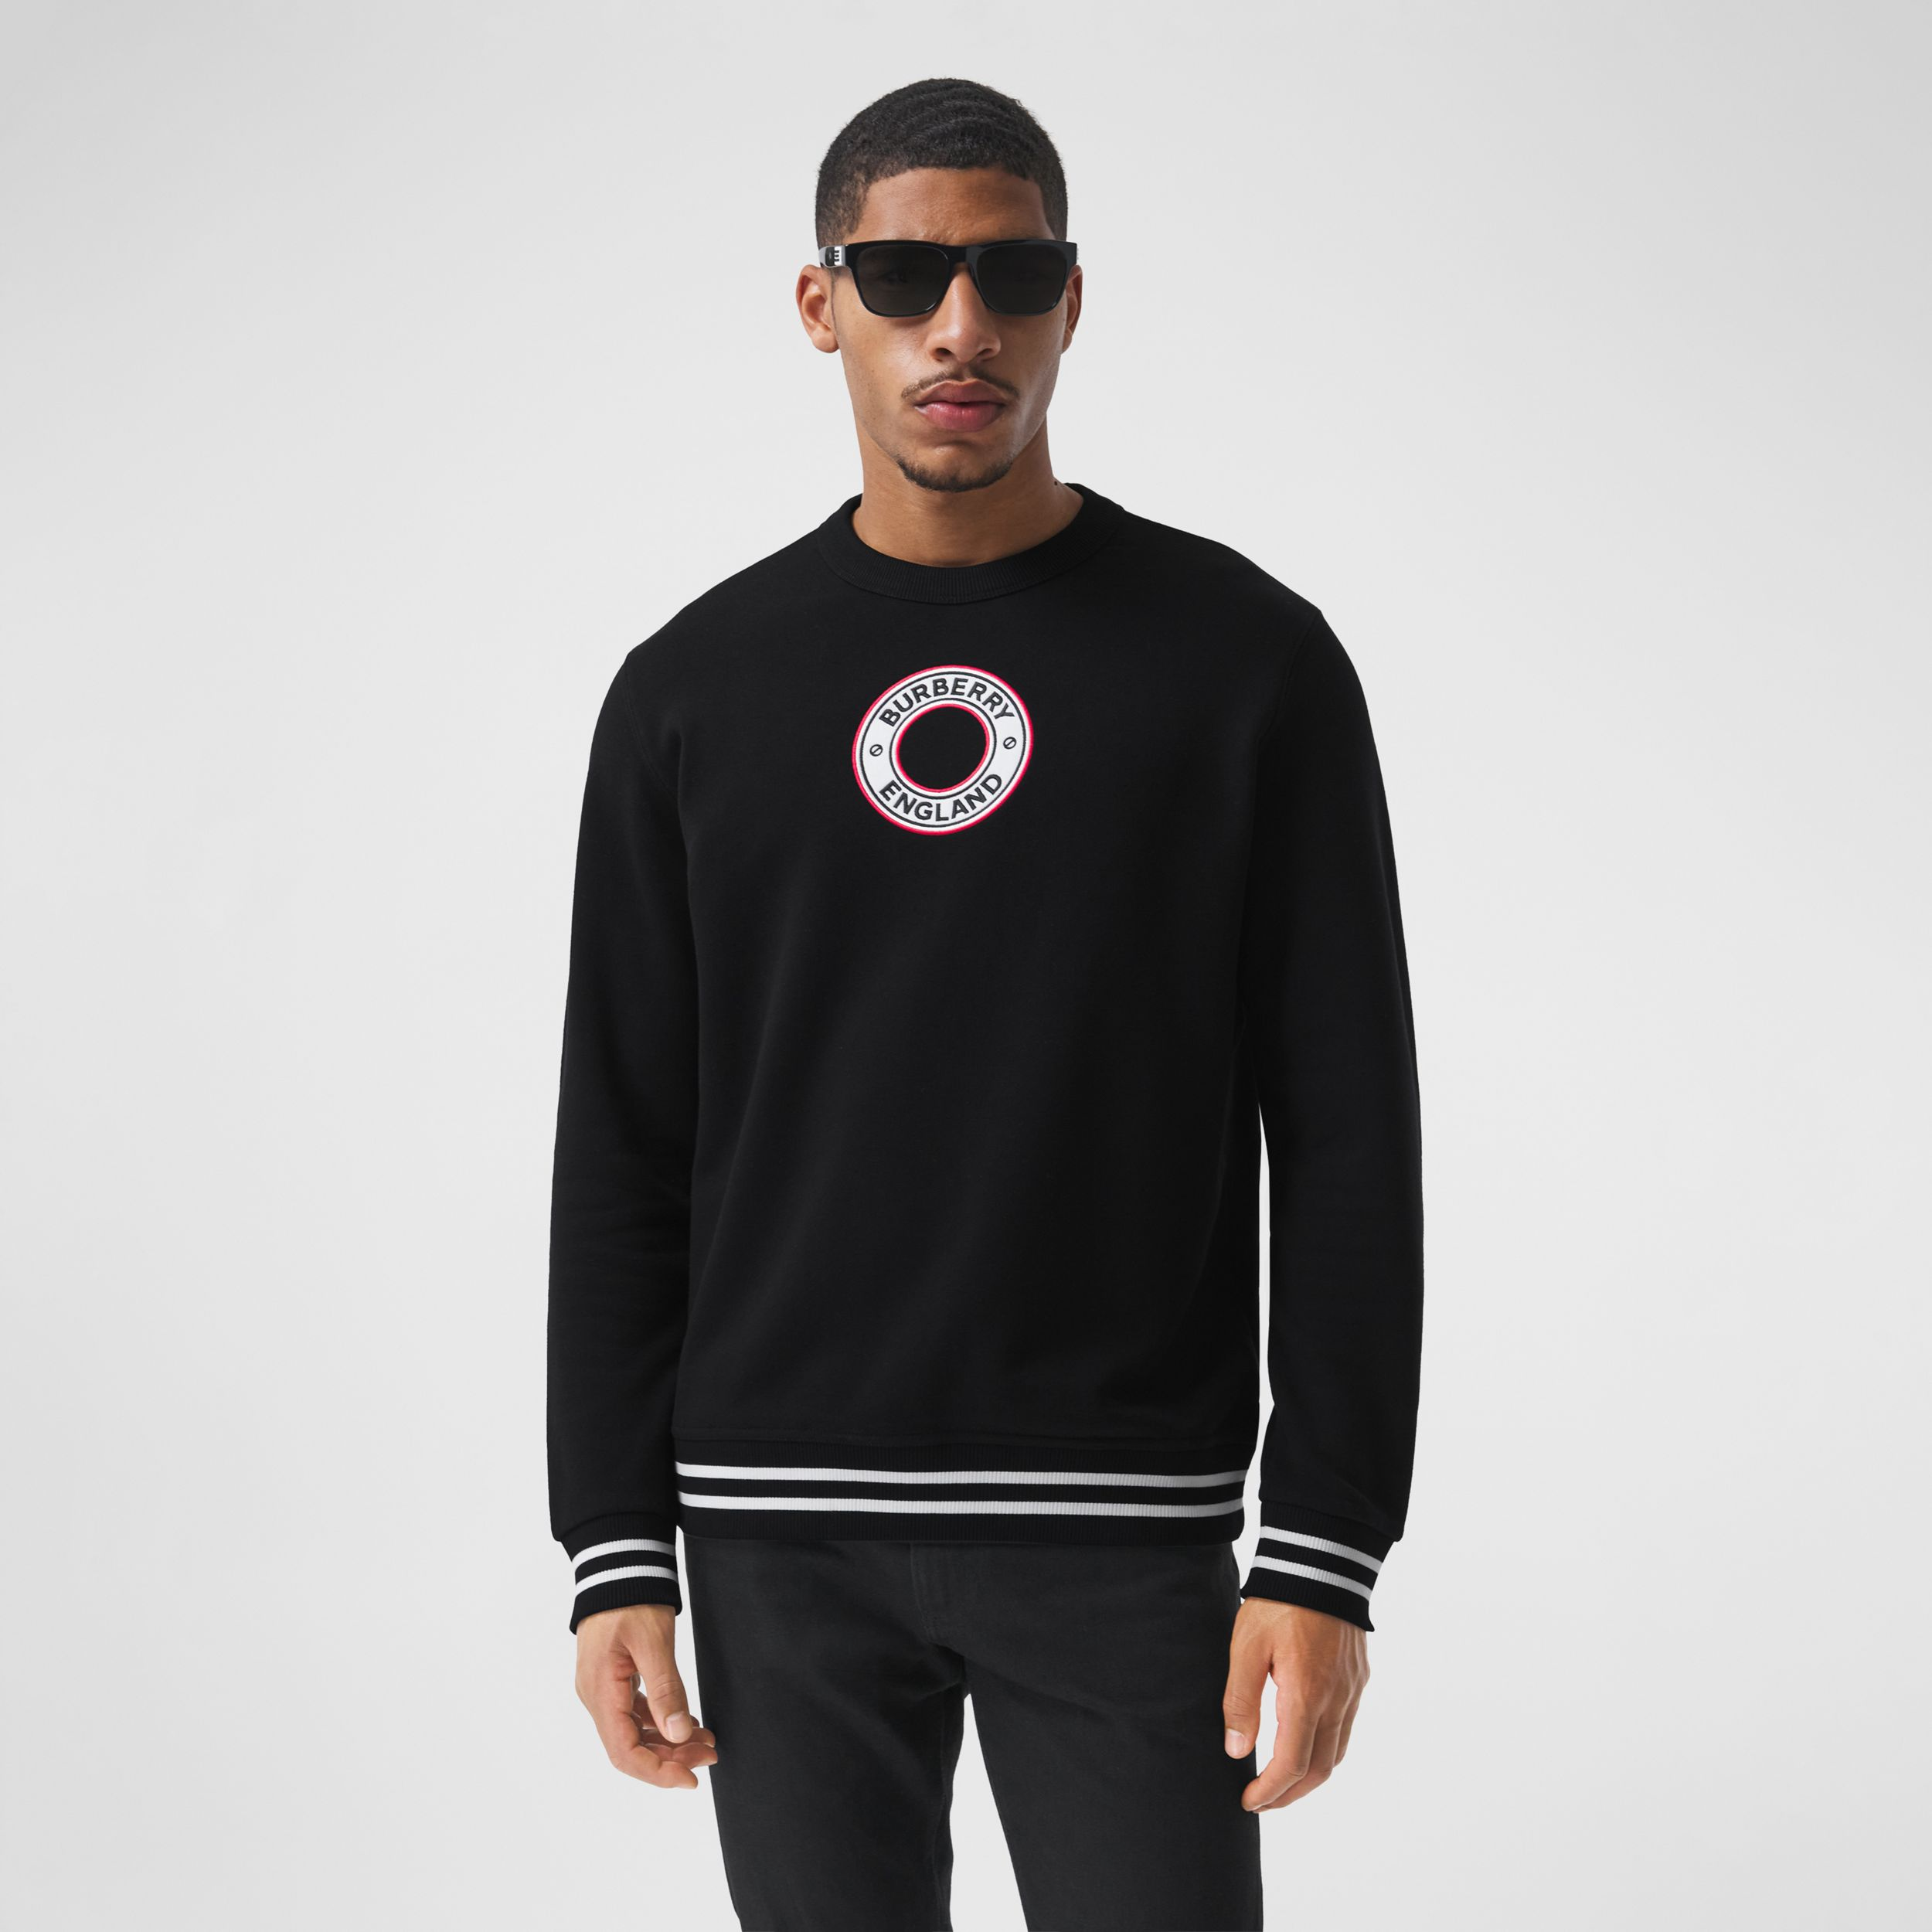 Logo Graphic Appliqué Cotton Sweatshirt in Black - Men | Burberry - 1